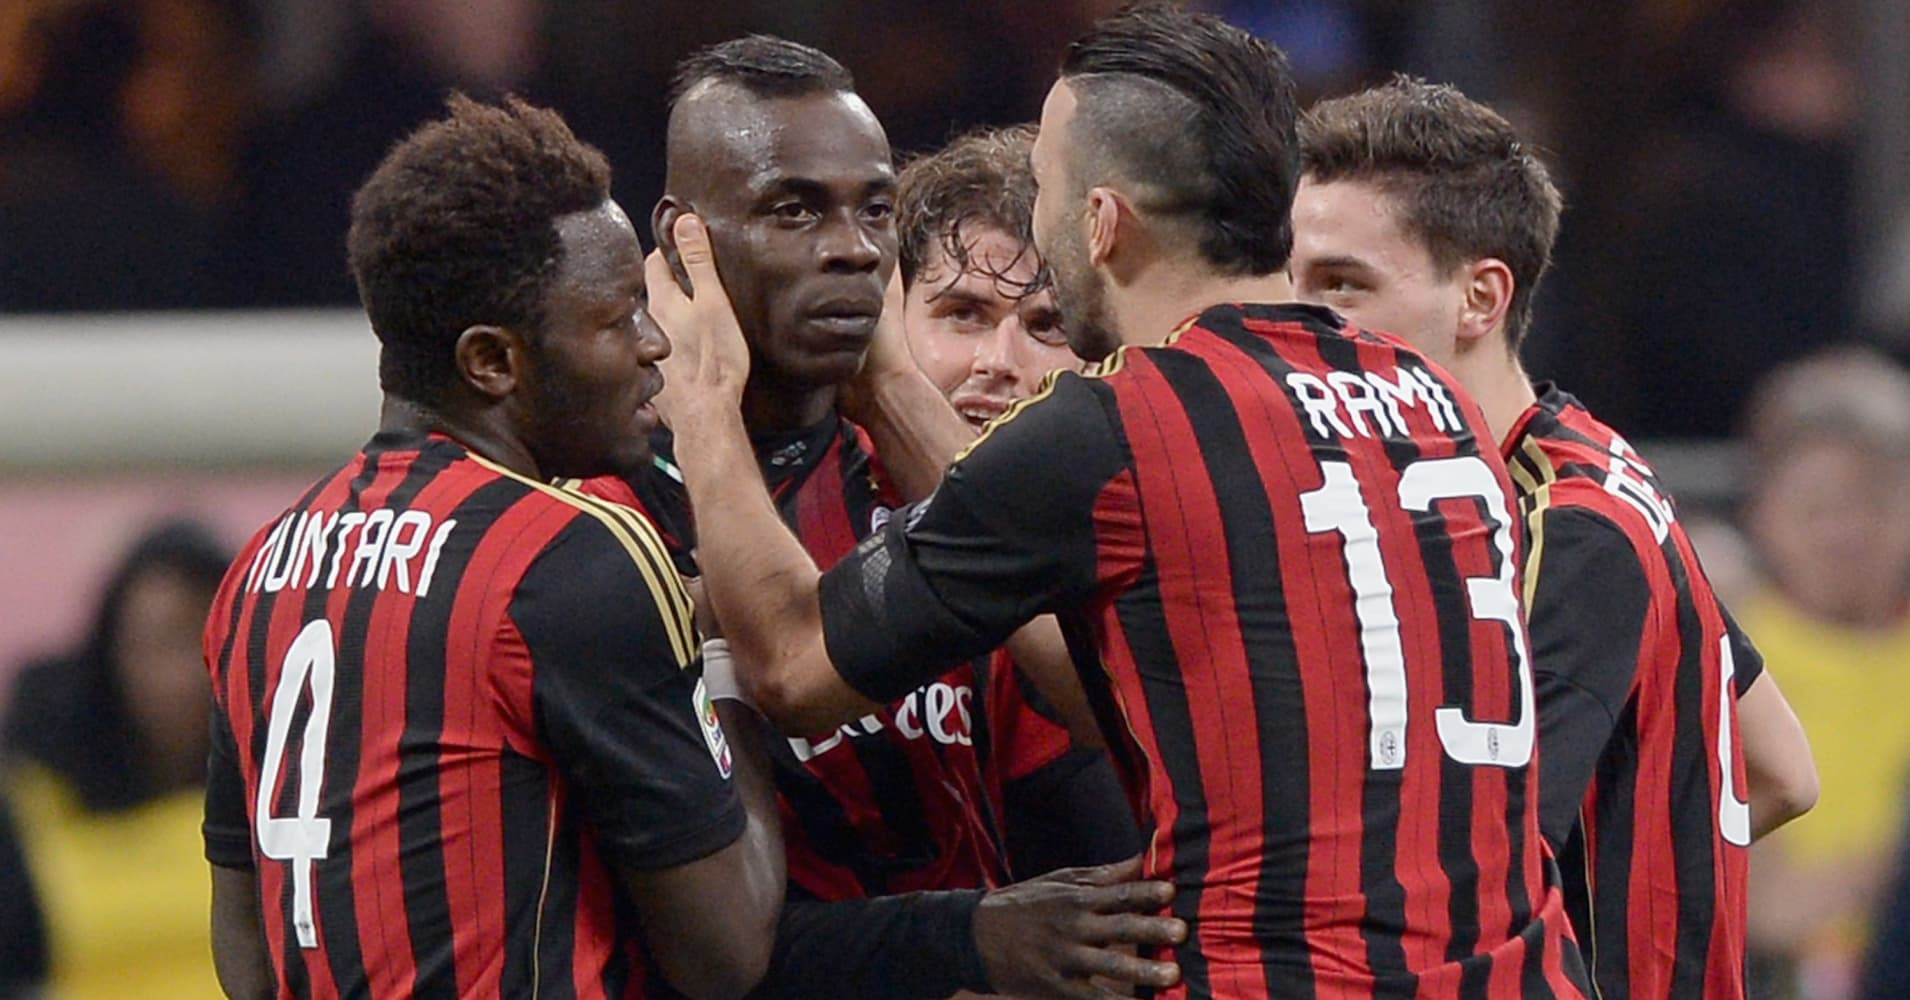 Is Italian Soccer Giant Ac Milan Up For Sale